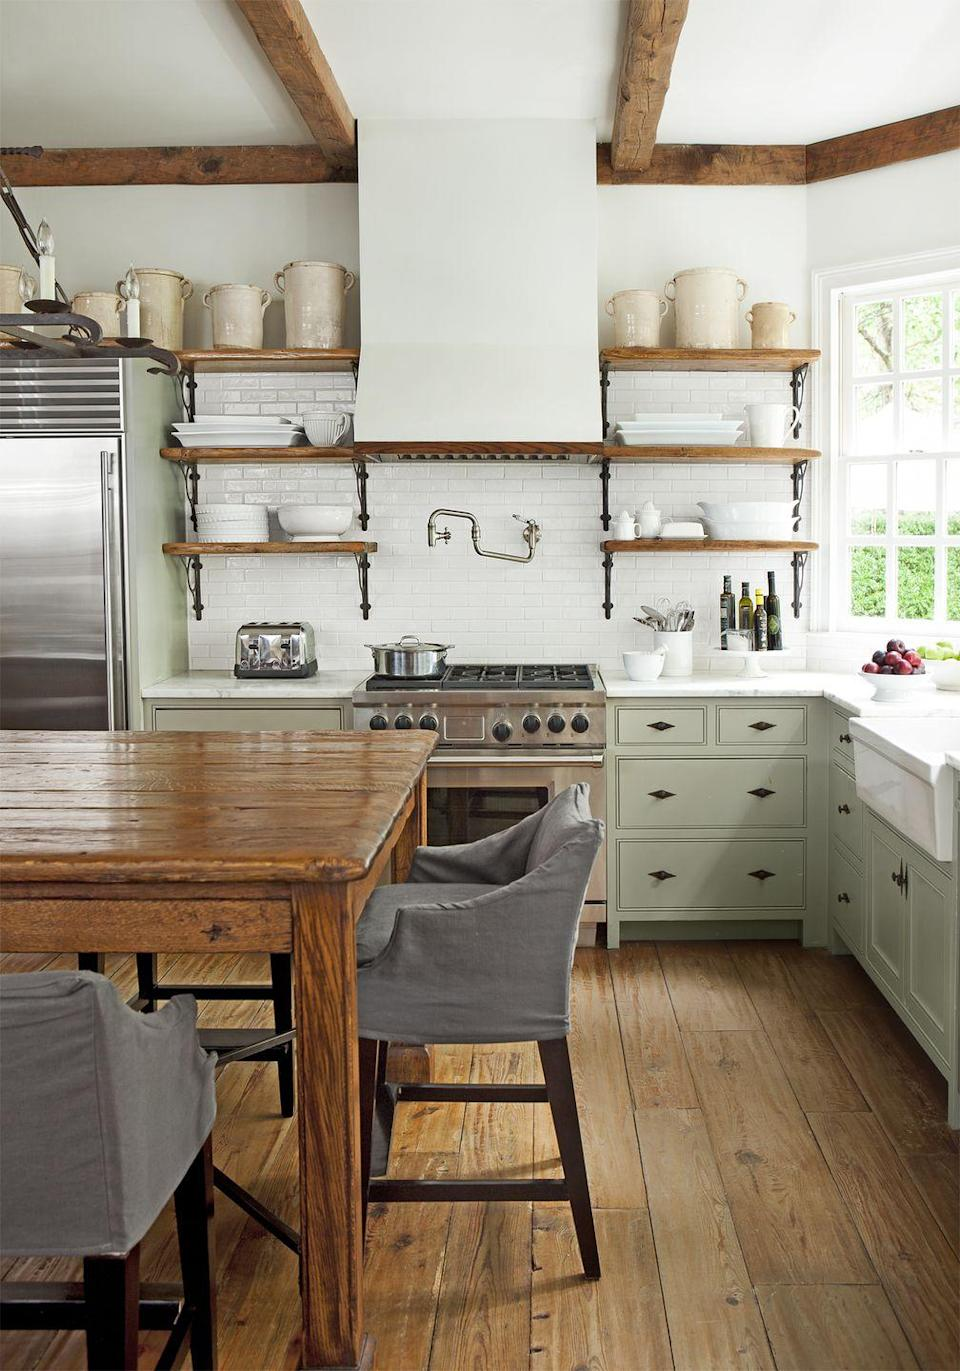 "<p>The kitchen is the most utilitarian room in the house, which is why you obsess over the appliances, the backsplash, the sink...But it's also the heart of the home. Subtle touches such as slipcovers, decorative hardware, and prized collections serve up a little softness. </p><p><strong>Bonus idea: </strong>Save the top shelf for precious collectibles, and leave the lower ones to everyday items.</p><p><a class=""link rapid-noclick-resp"" href=""https://go.redirectingat.com?id=74968X1596630&url=https%3A%2F%2Fwww.homedepot.com%2Fs%2Fslipcovers&sref=https%3A%2F%2Fwww.countryliving.com%2Fhome-design%2Fdecorating-ideas%2Fg3988%2Fkitchen-trends%2F"" rel=""nofollow noopener"" target=""_blank"" data-ylk=""slk:SHOP SLIPCOVERS"">SHOP SLIPCOVERS</a></p>"